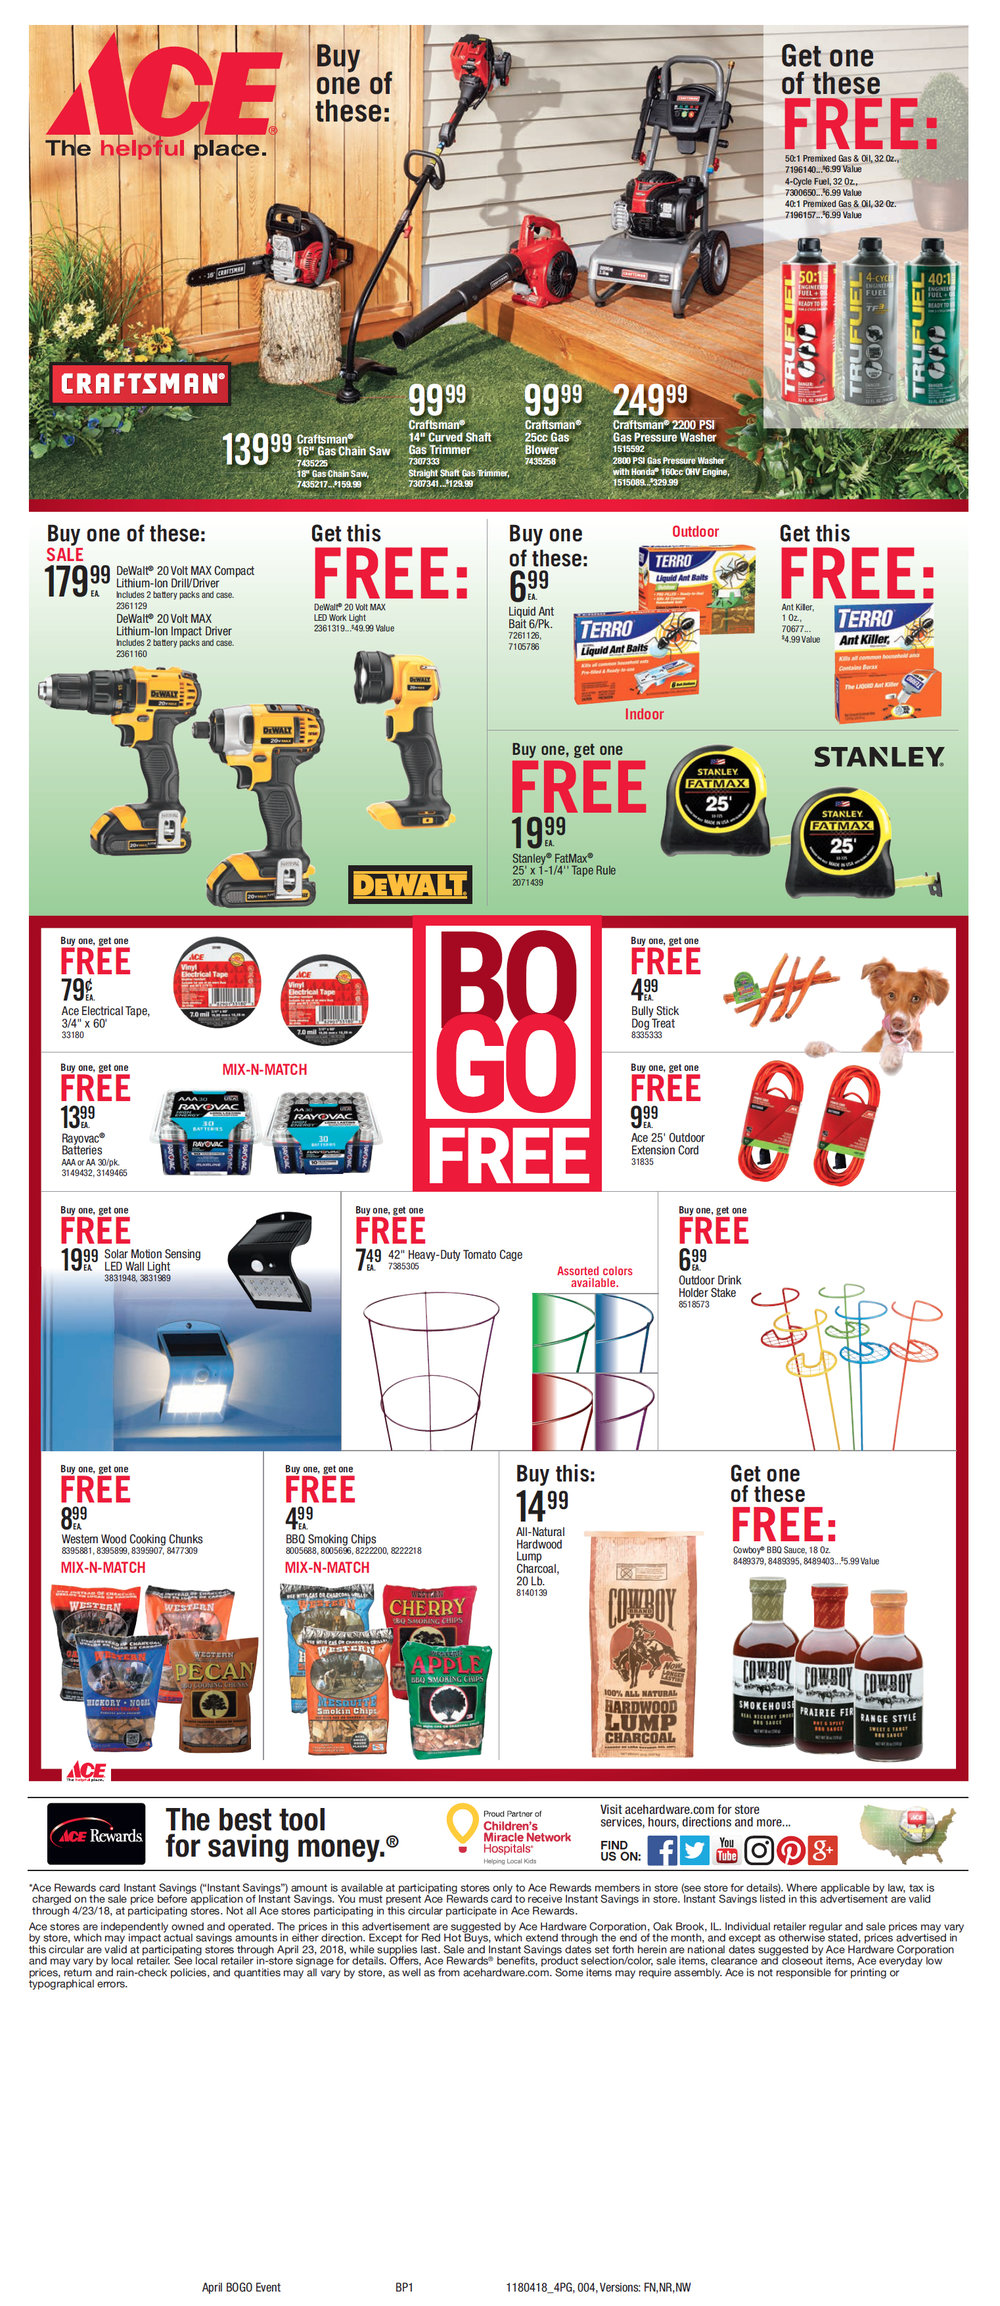 bogo sale flyer copy 4.jpg